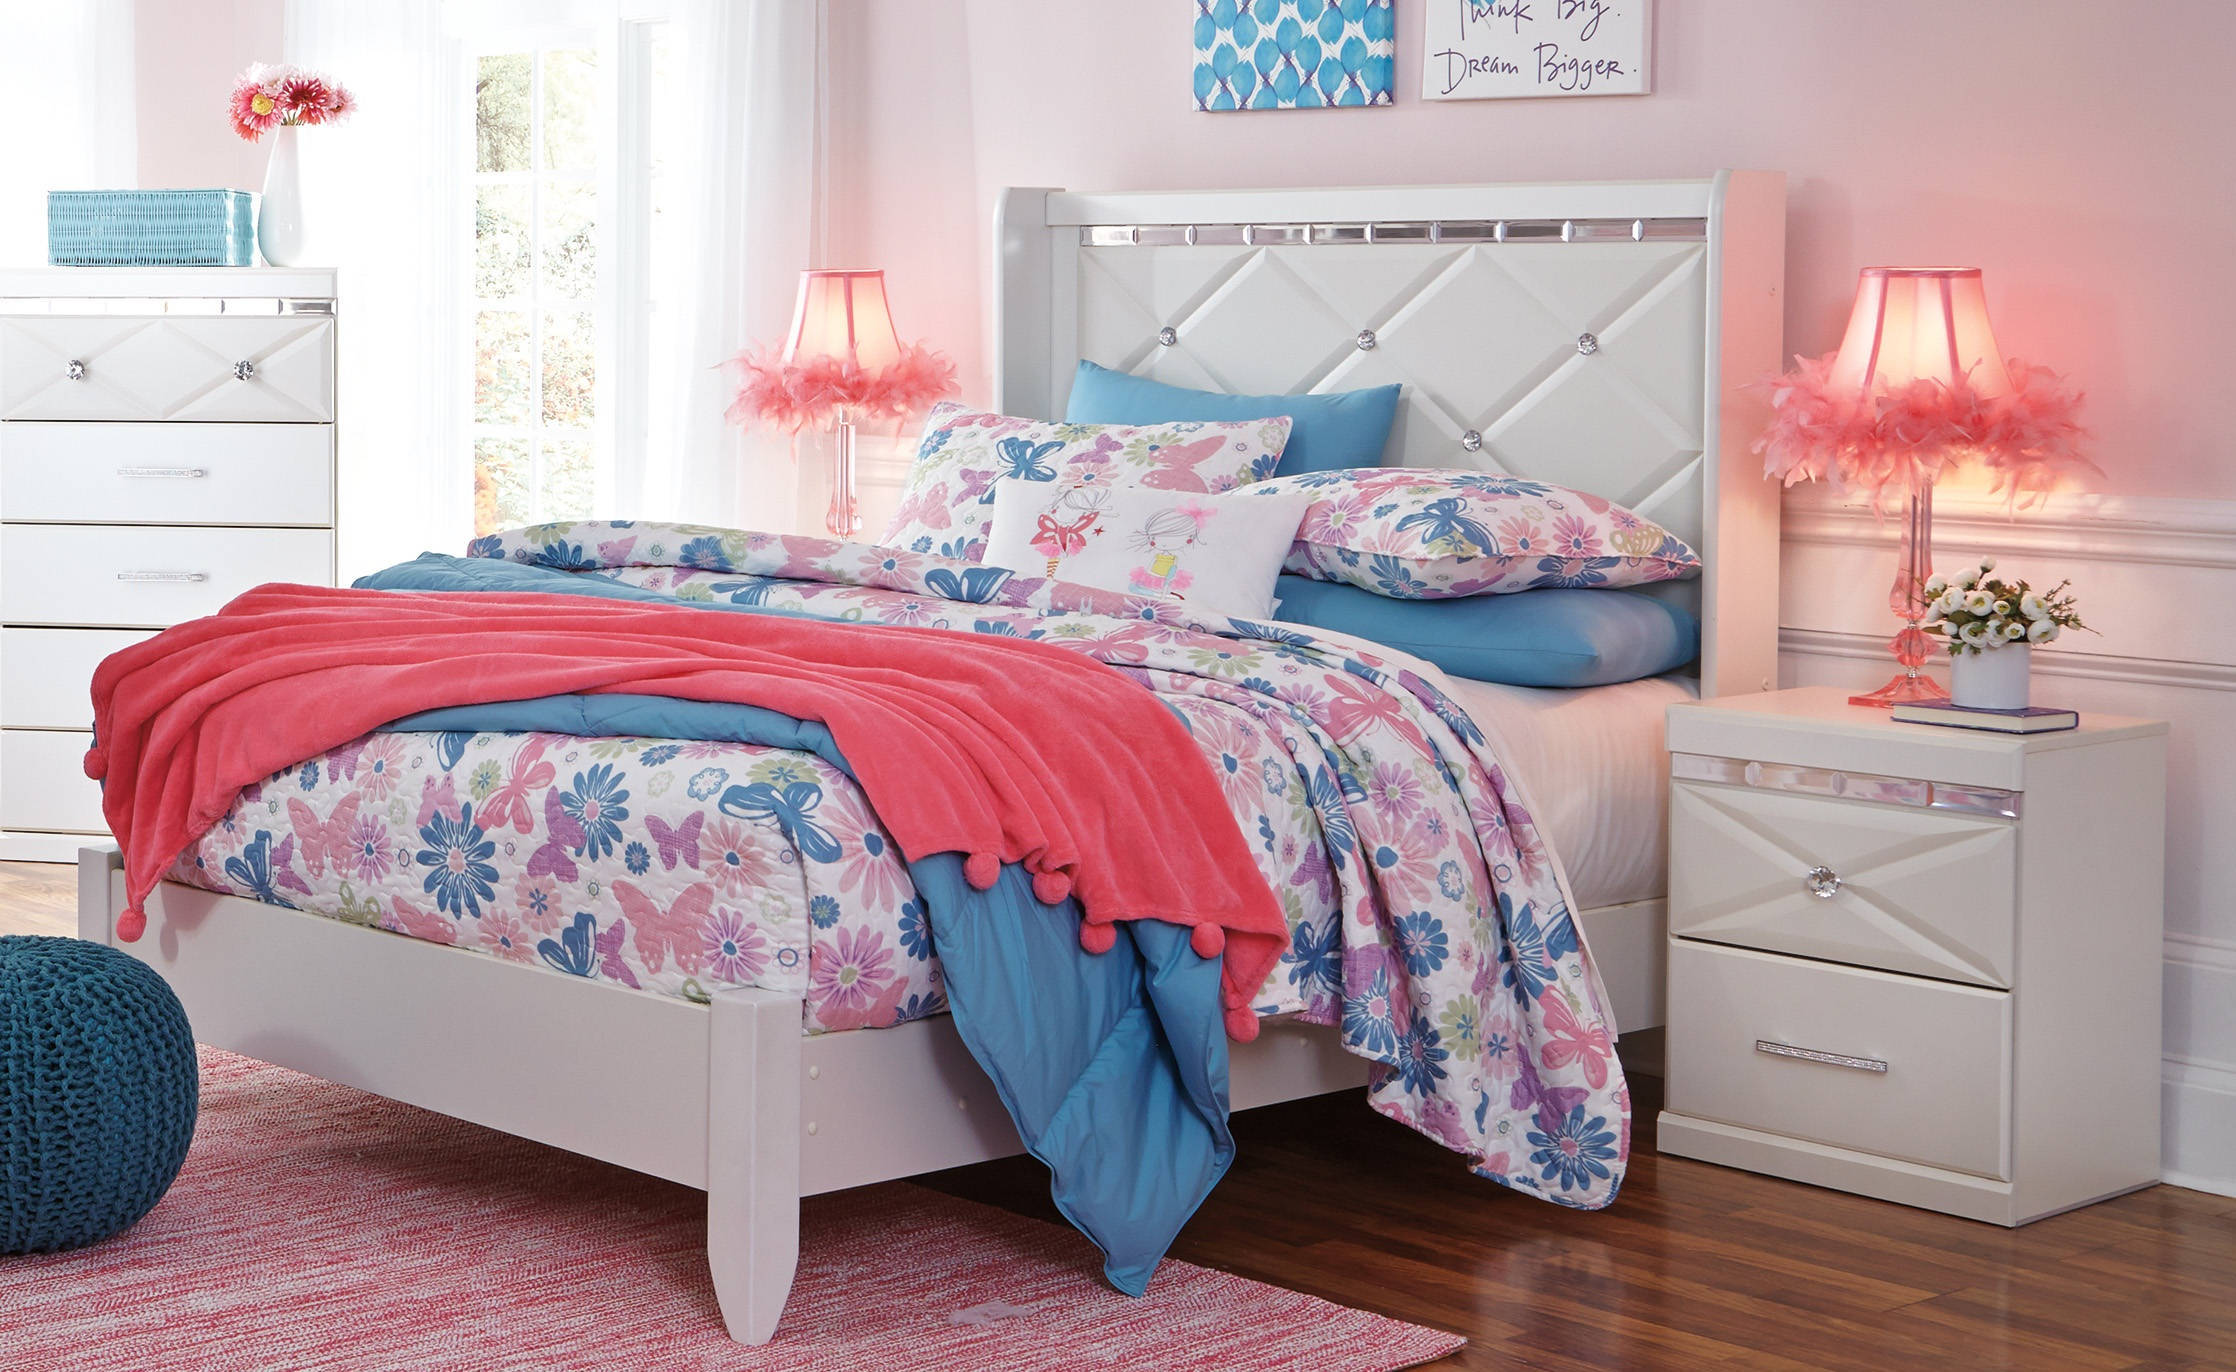 Ashley Furniture Dreamur 2pc Kids Bedroom Set with Full Panel Bed